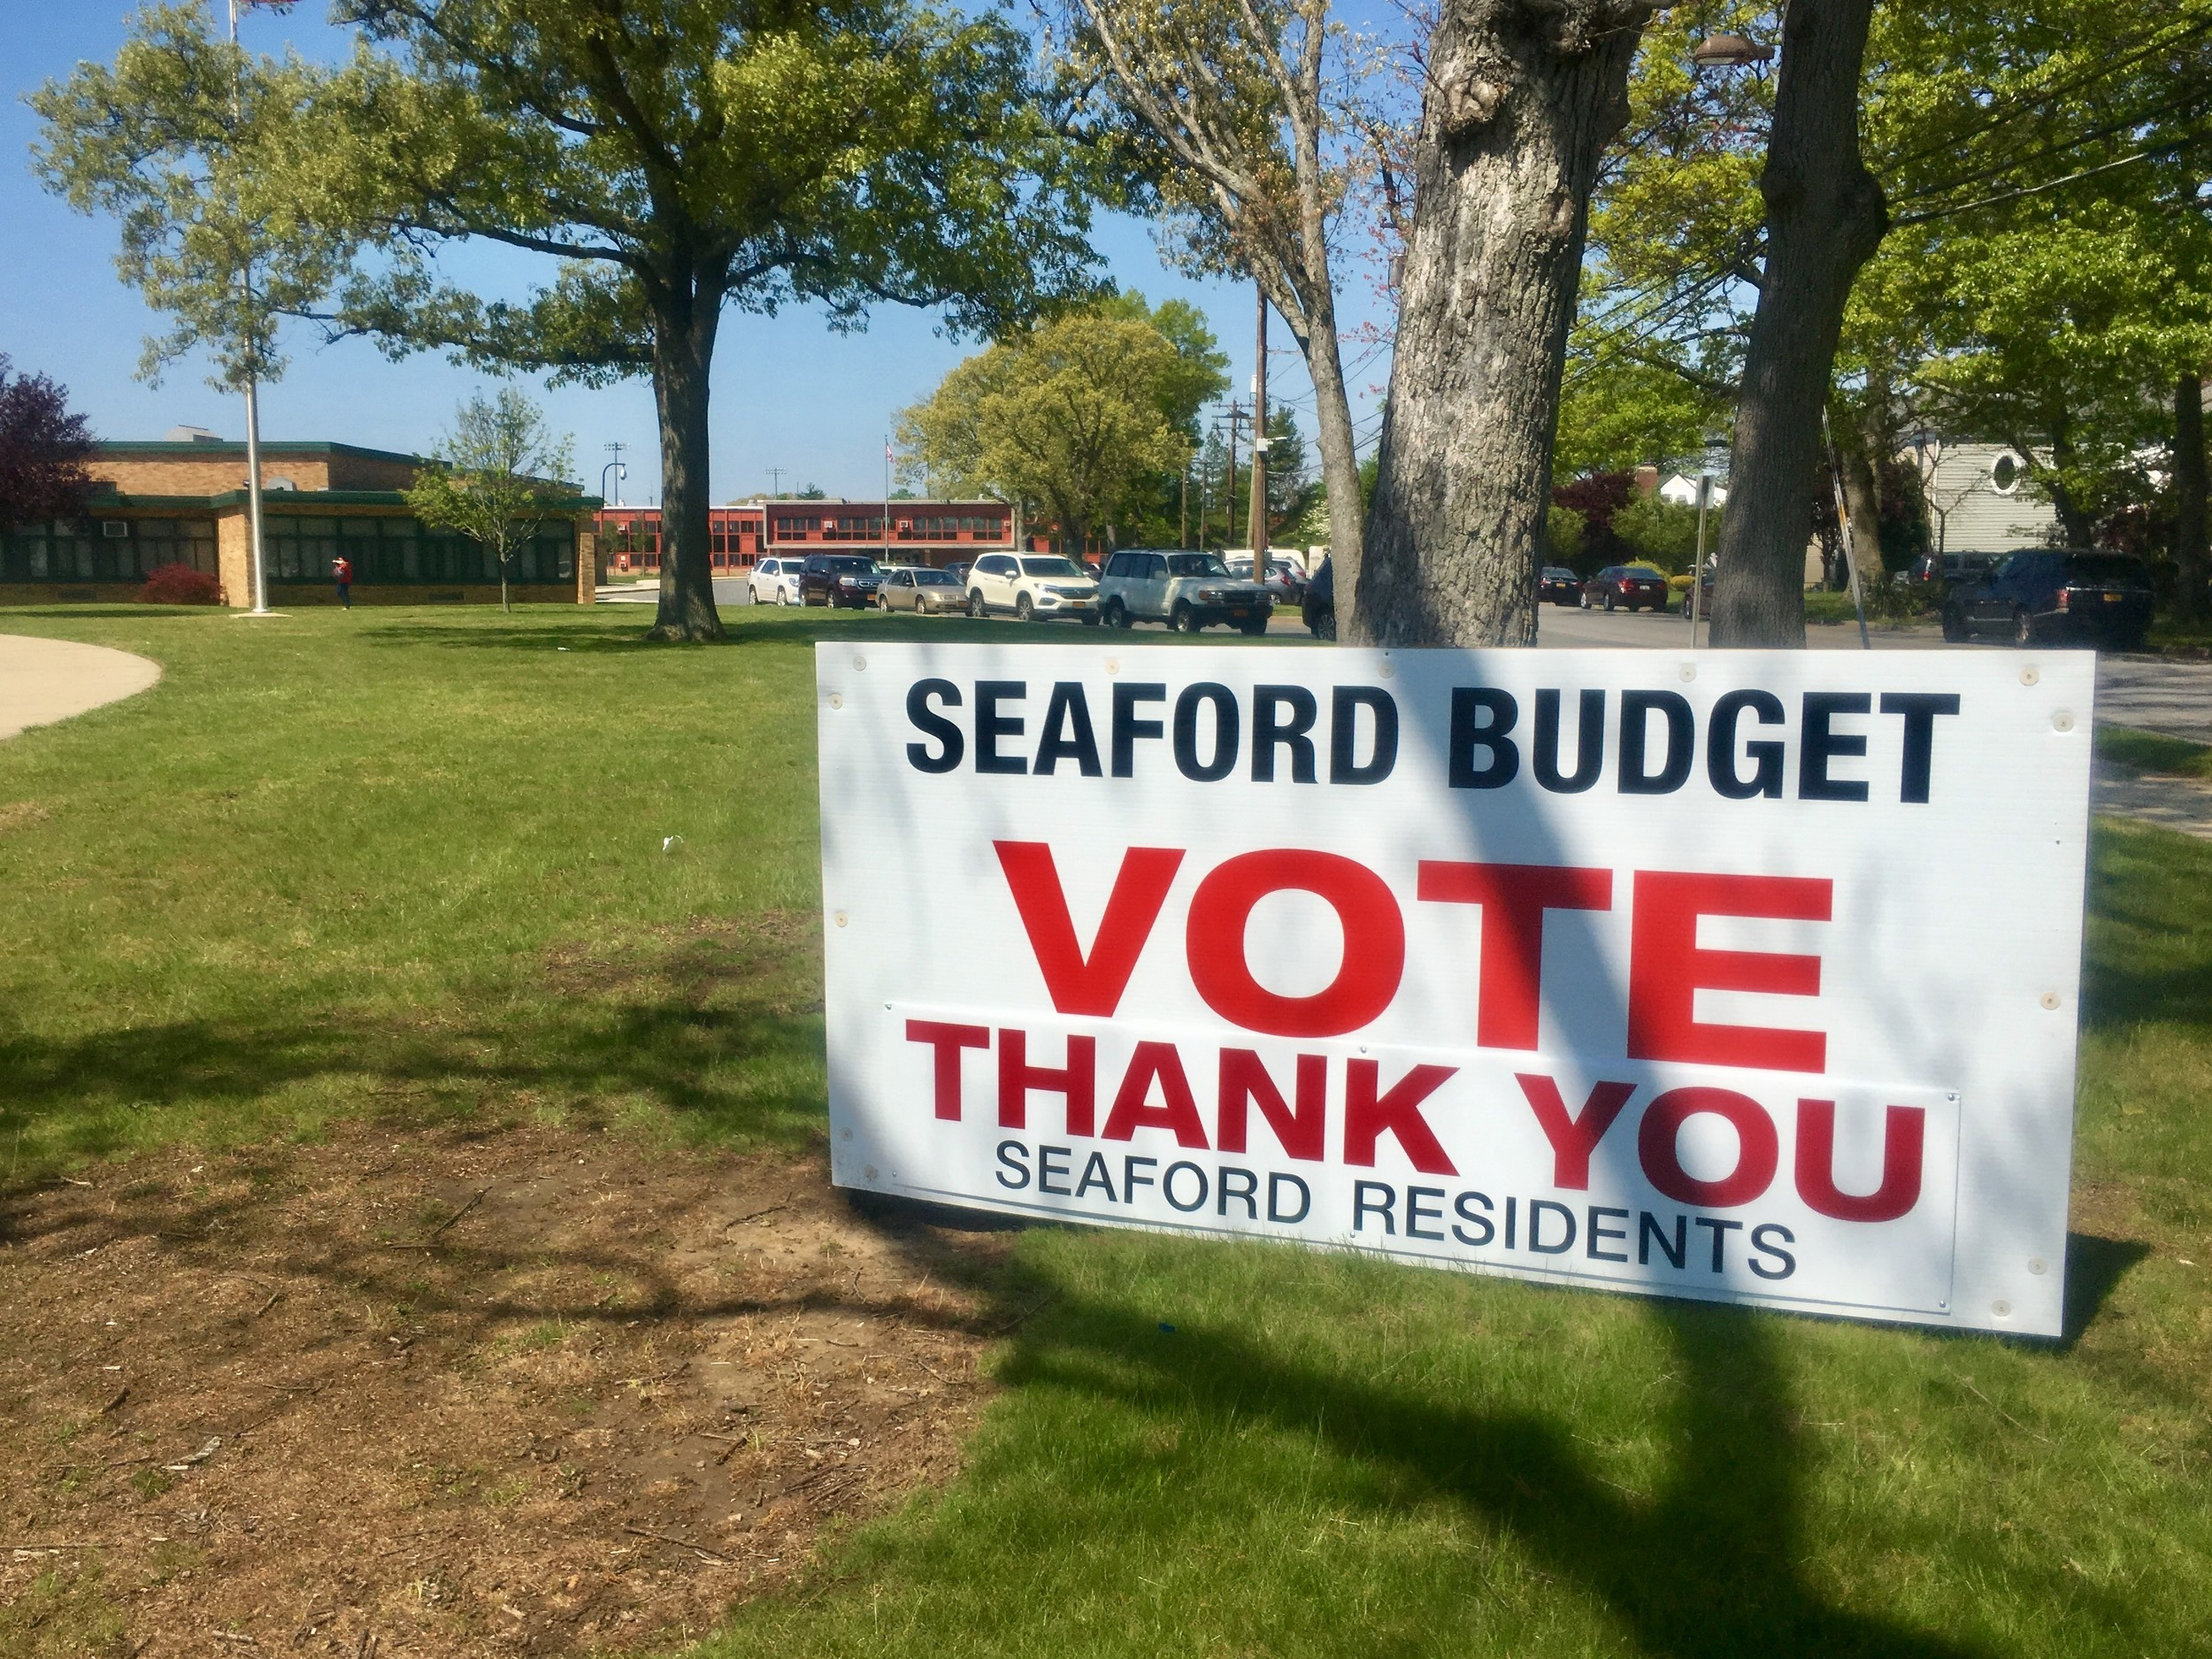 Seaford officials said that they were grateful to the community for passing the budget.